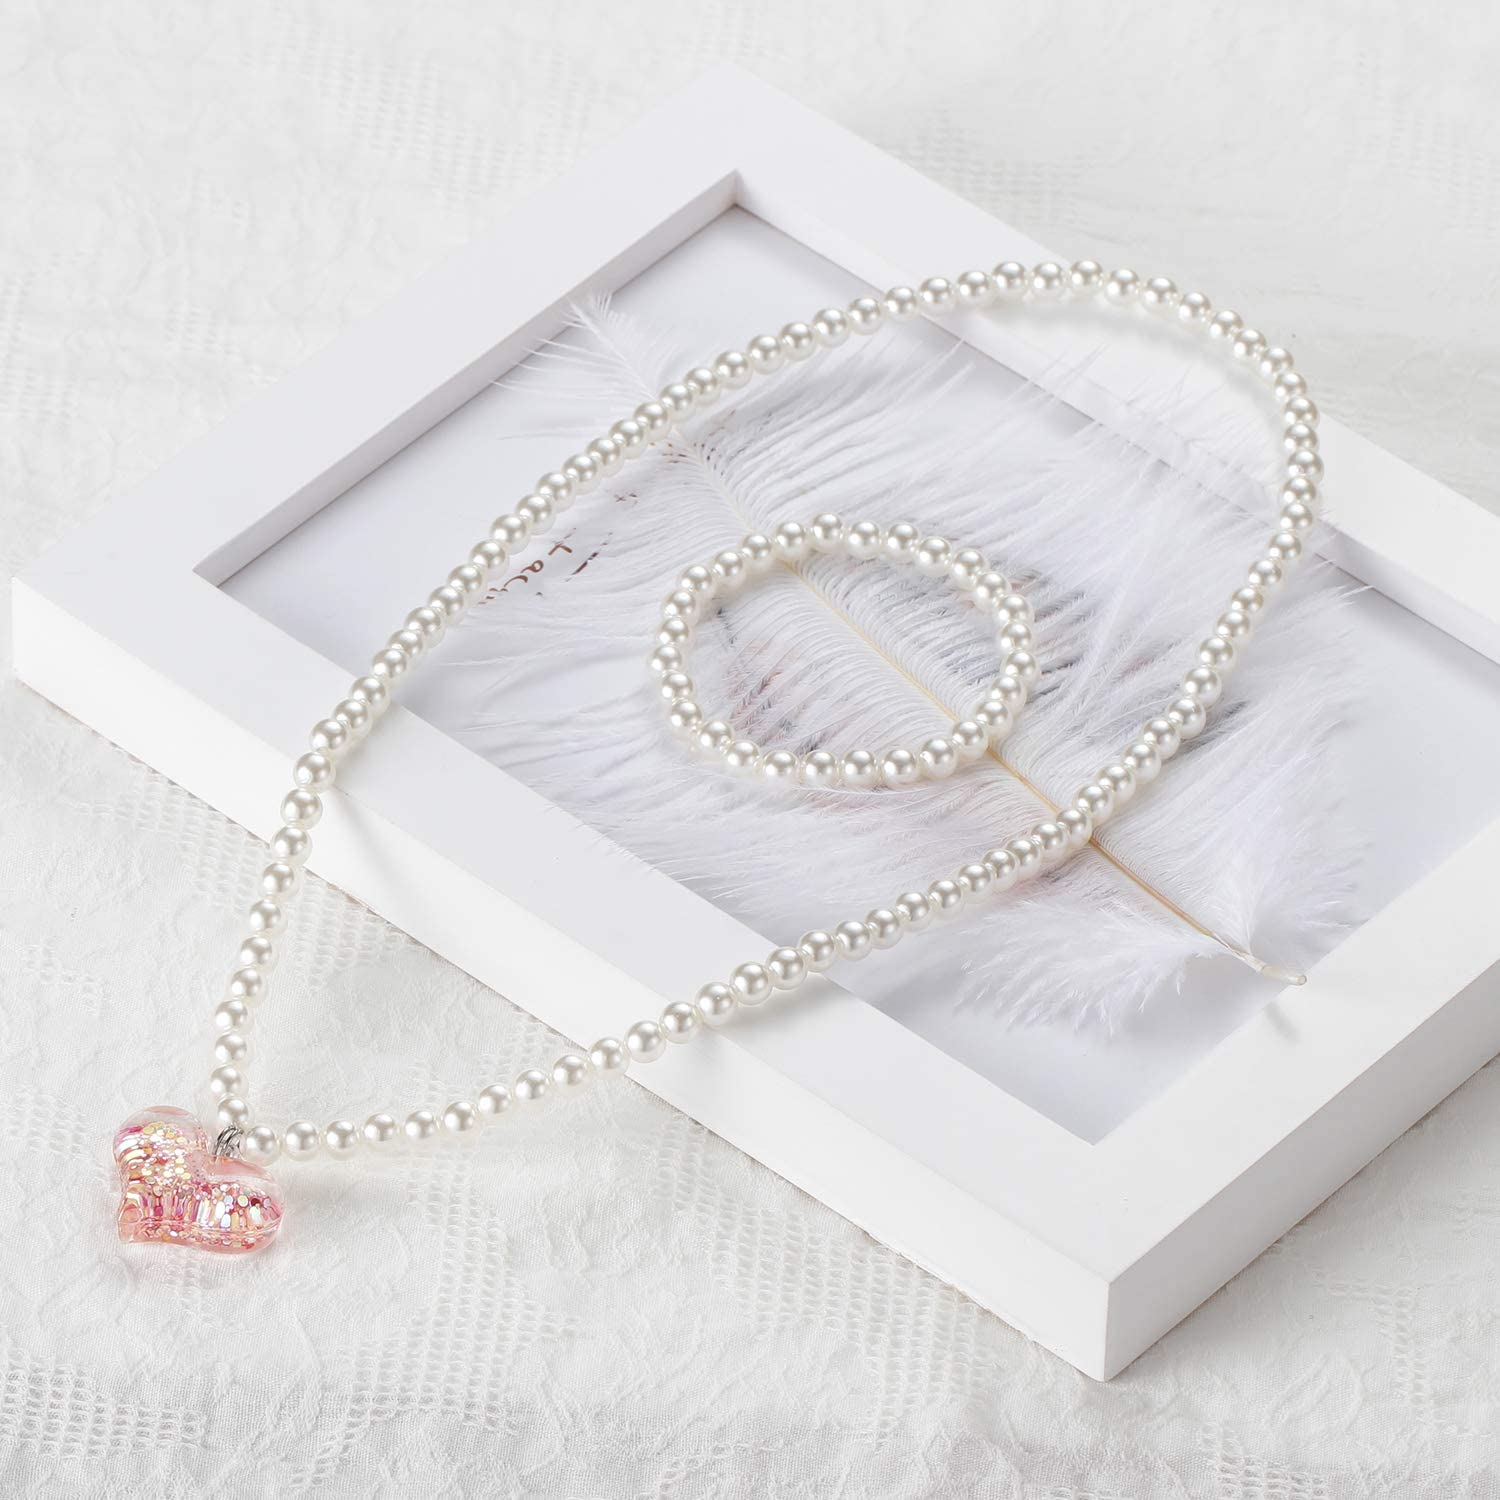 Flower Girl Gift Super Sparkly Heart Charm in Pastel Necklace and Pearl Bracelet Girls Jewelry Set